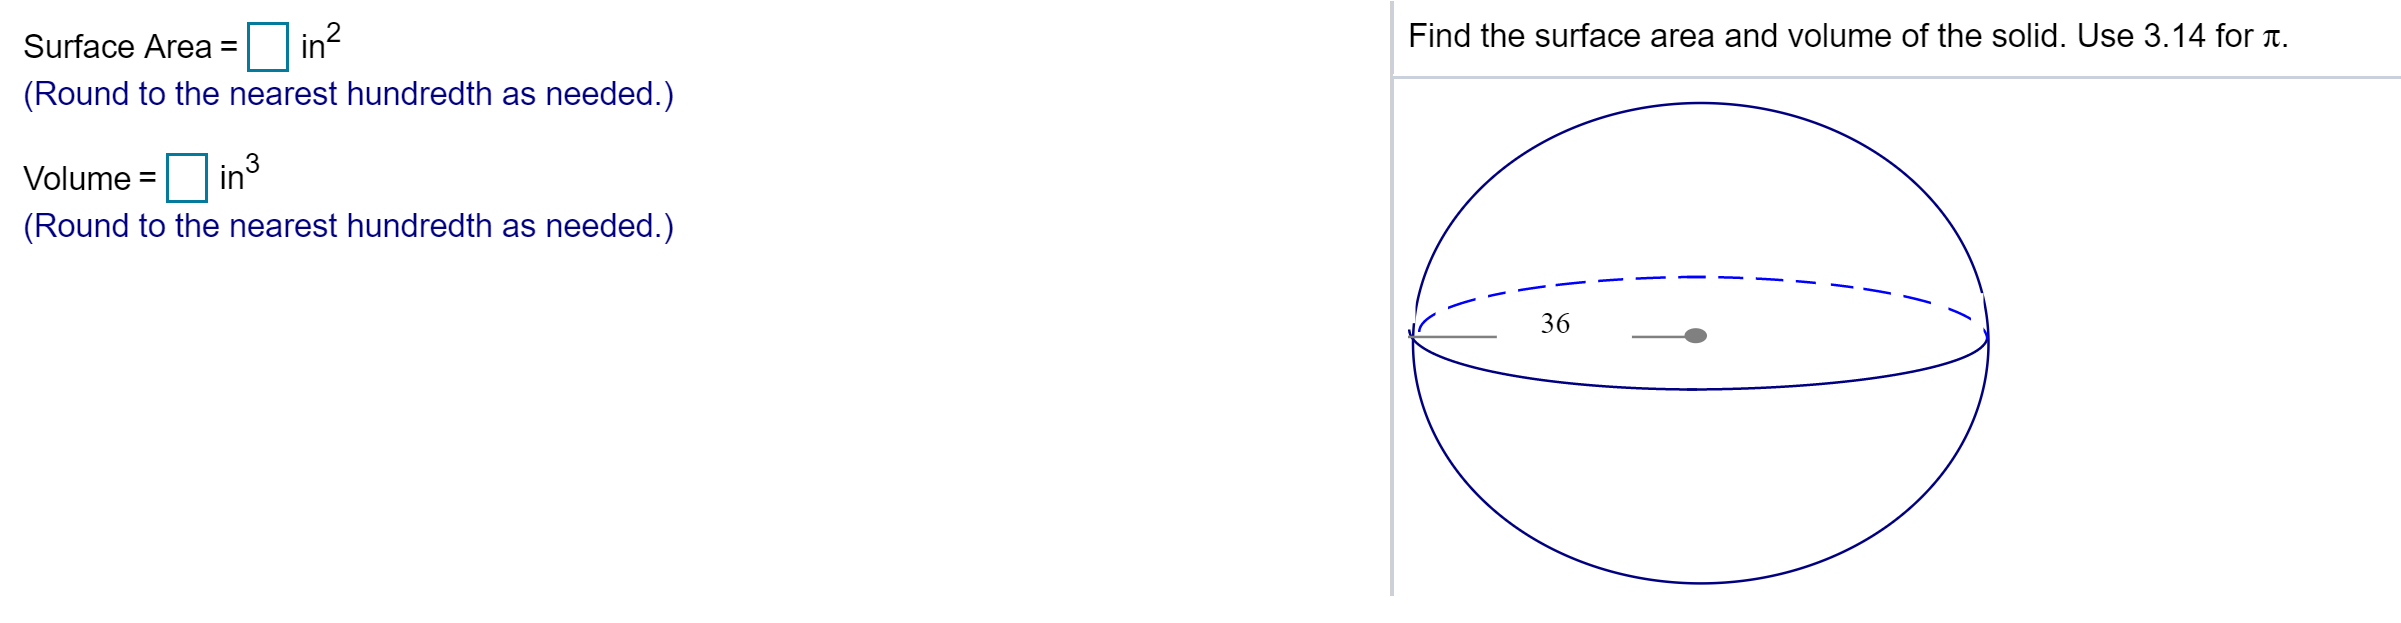 Surface Area in? (Round to the nearest hundredth as needed.) %3D Find the surface area and volume of the solid. Use 3.14 for T. Volume = in (Round to the nearest hundredth as needed.) 36